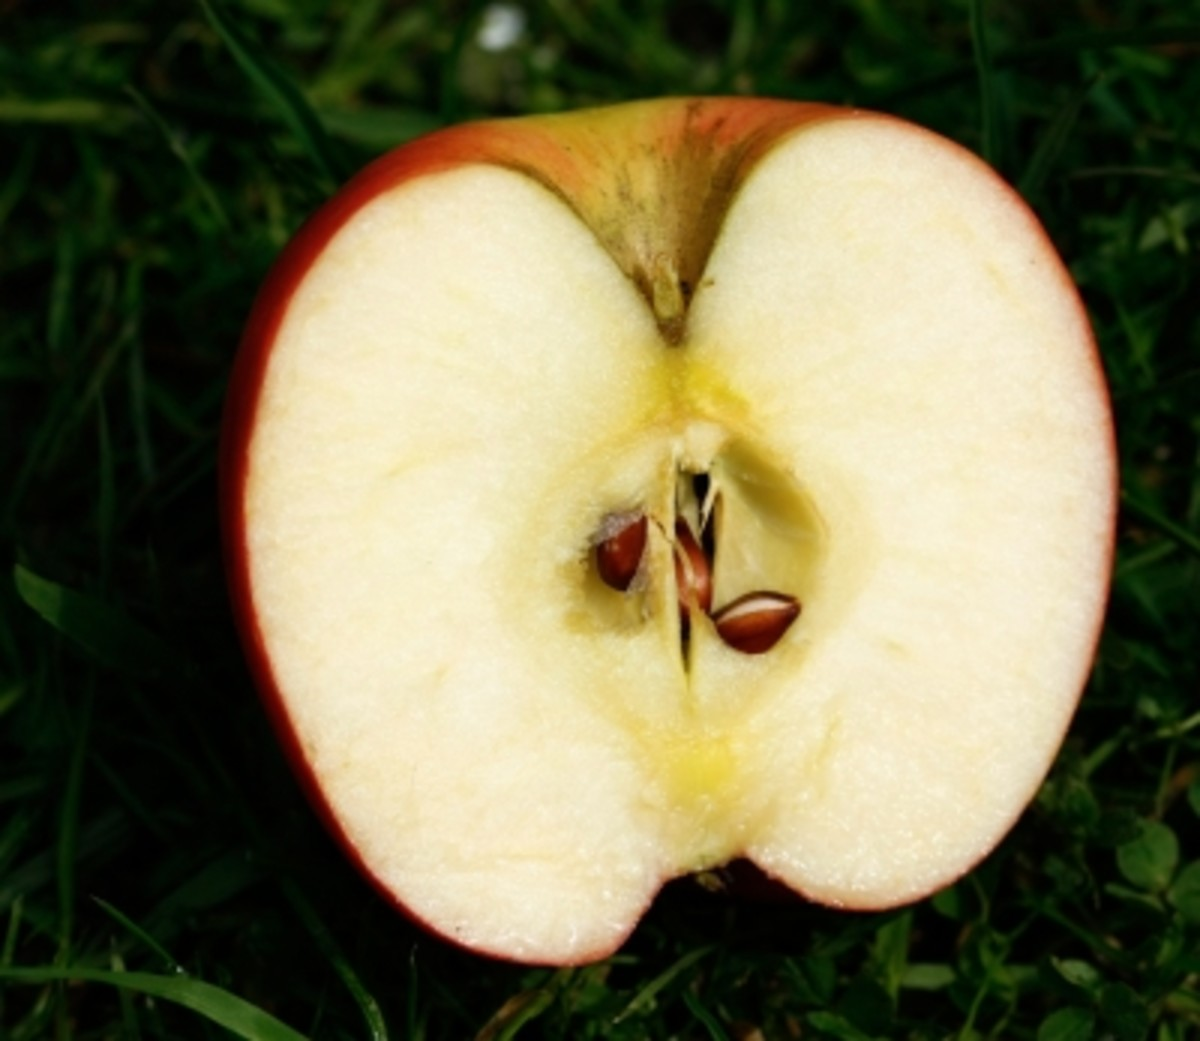 not only do apples benefit your health but your oral hygiene too.